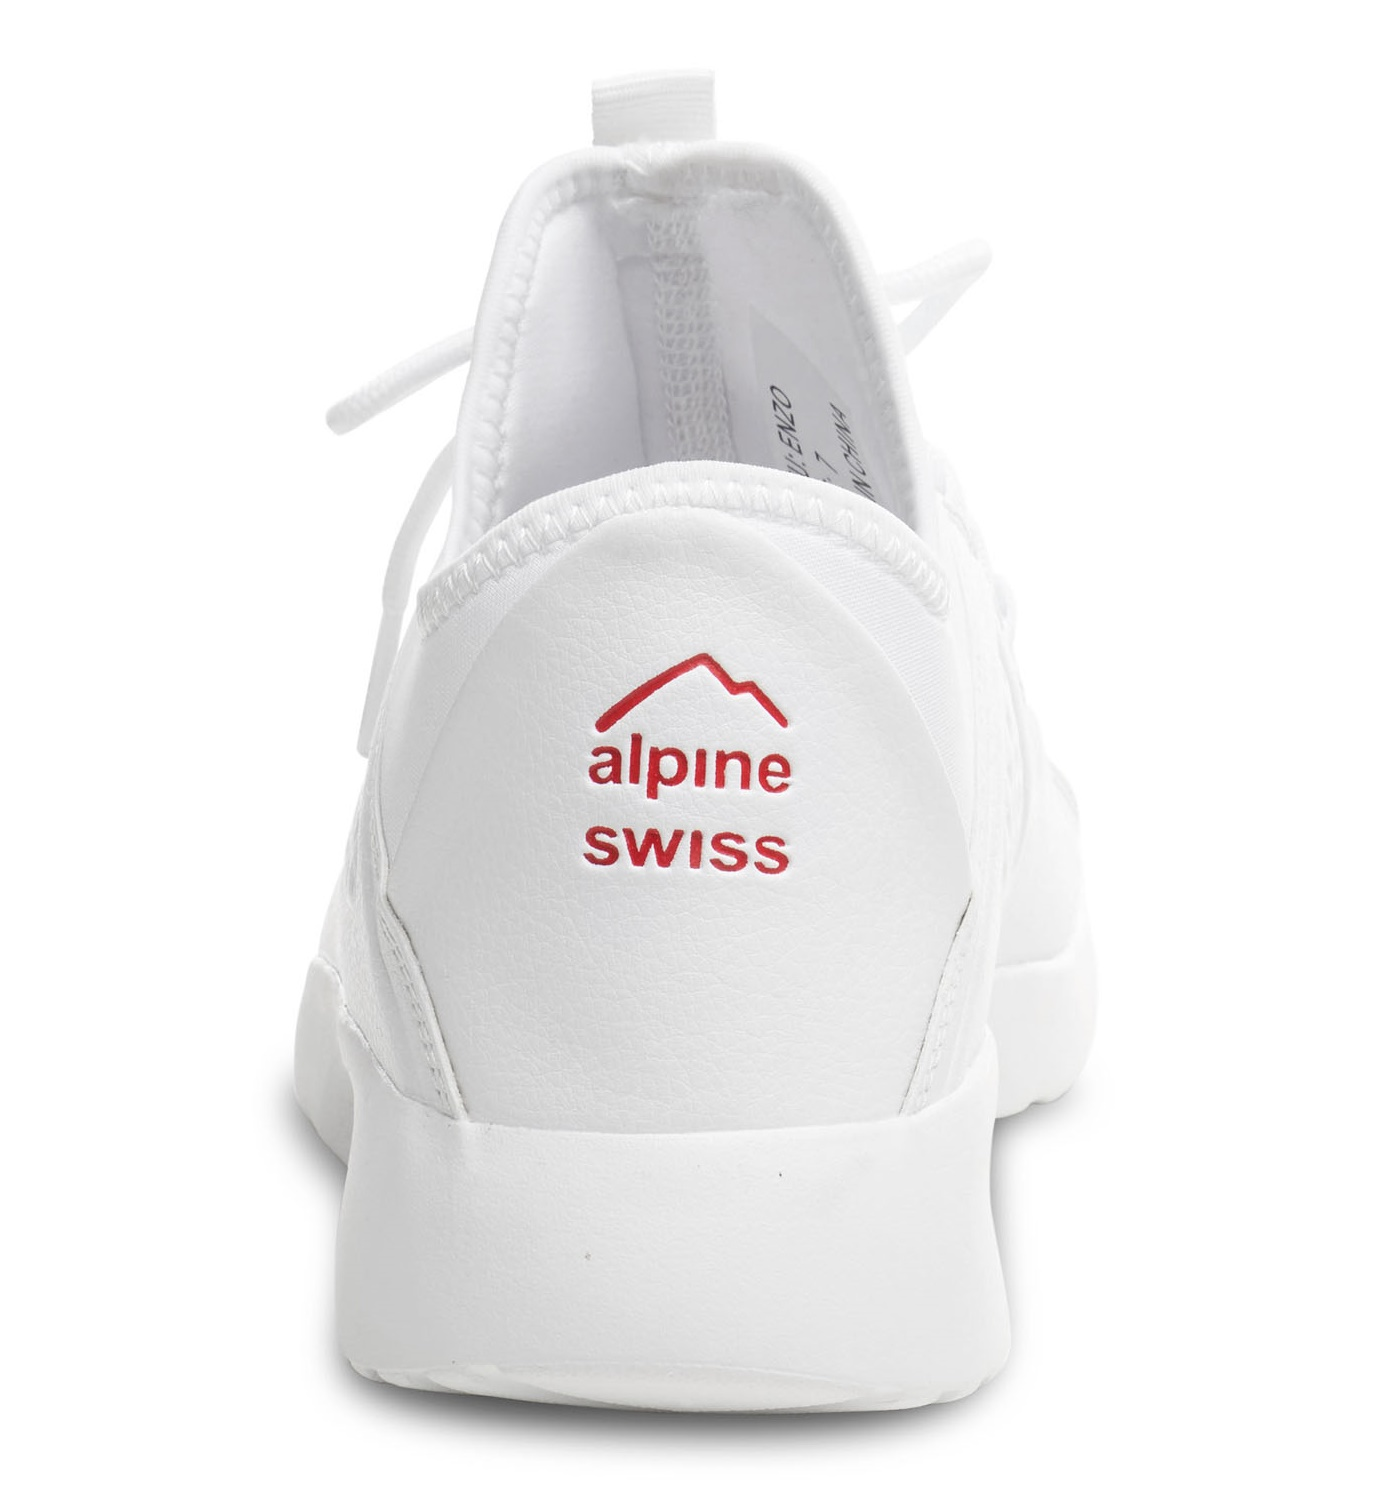 Alpine-Swiss-Enzo-Mens-Fashion-Sneakers-Lightweight-Knit-Lace-Up-Tennis-Shoes